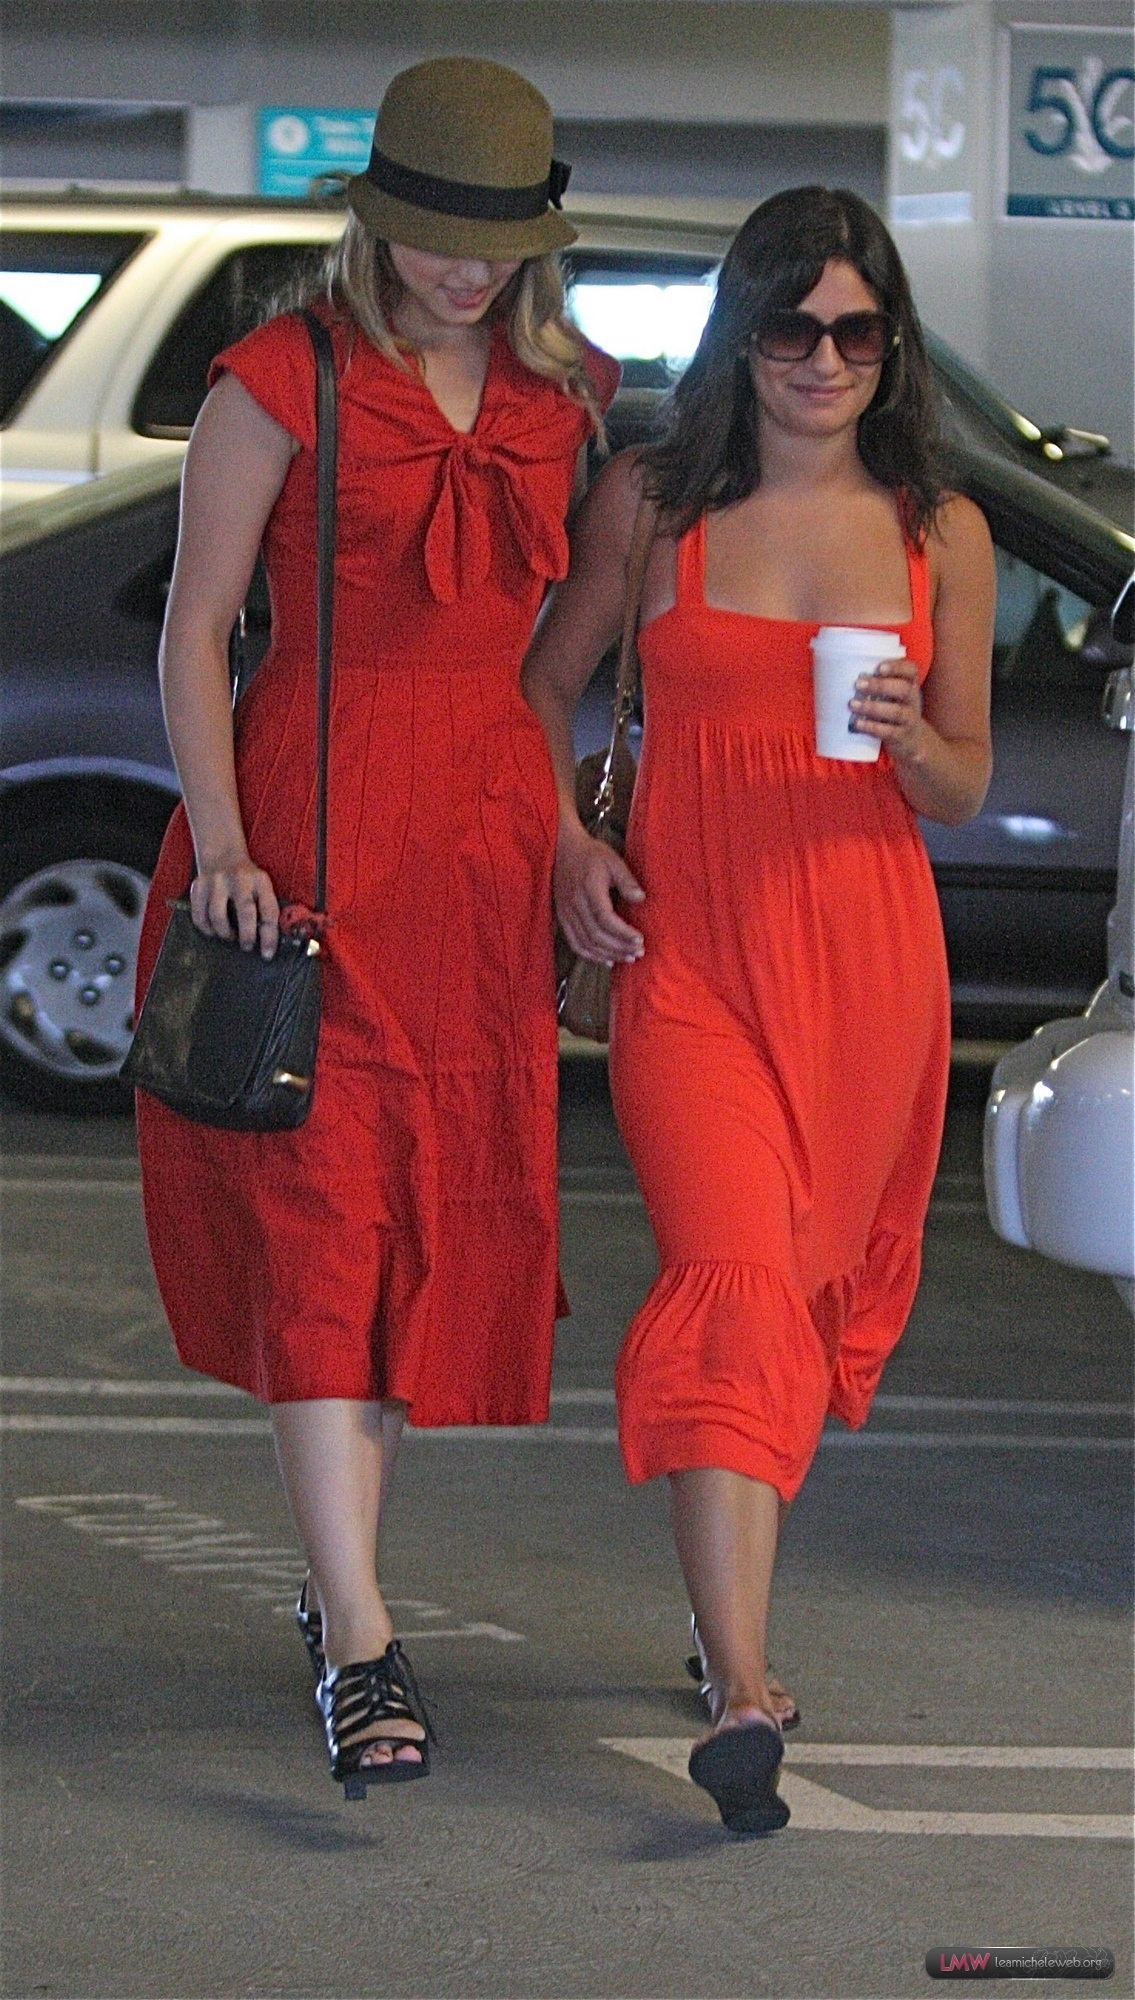 Dianna and Lea *BFF*